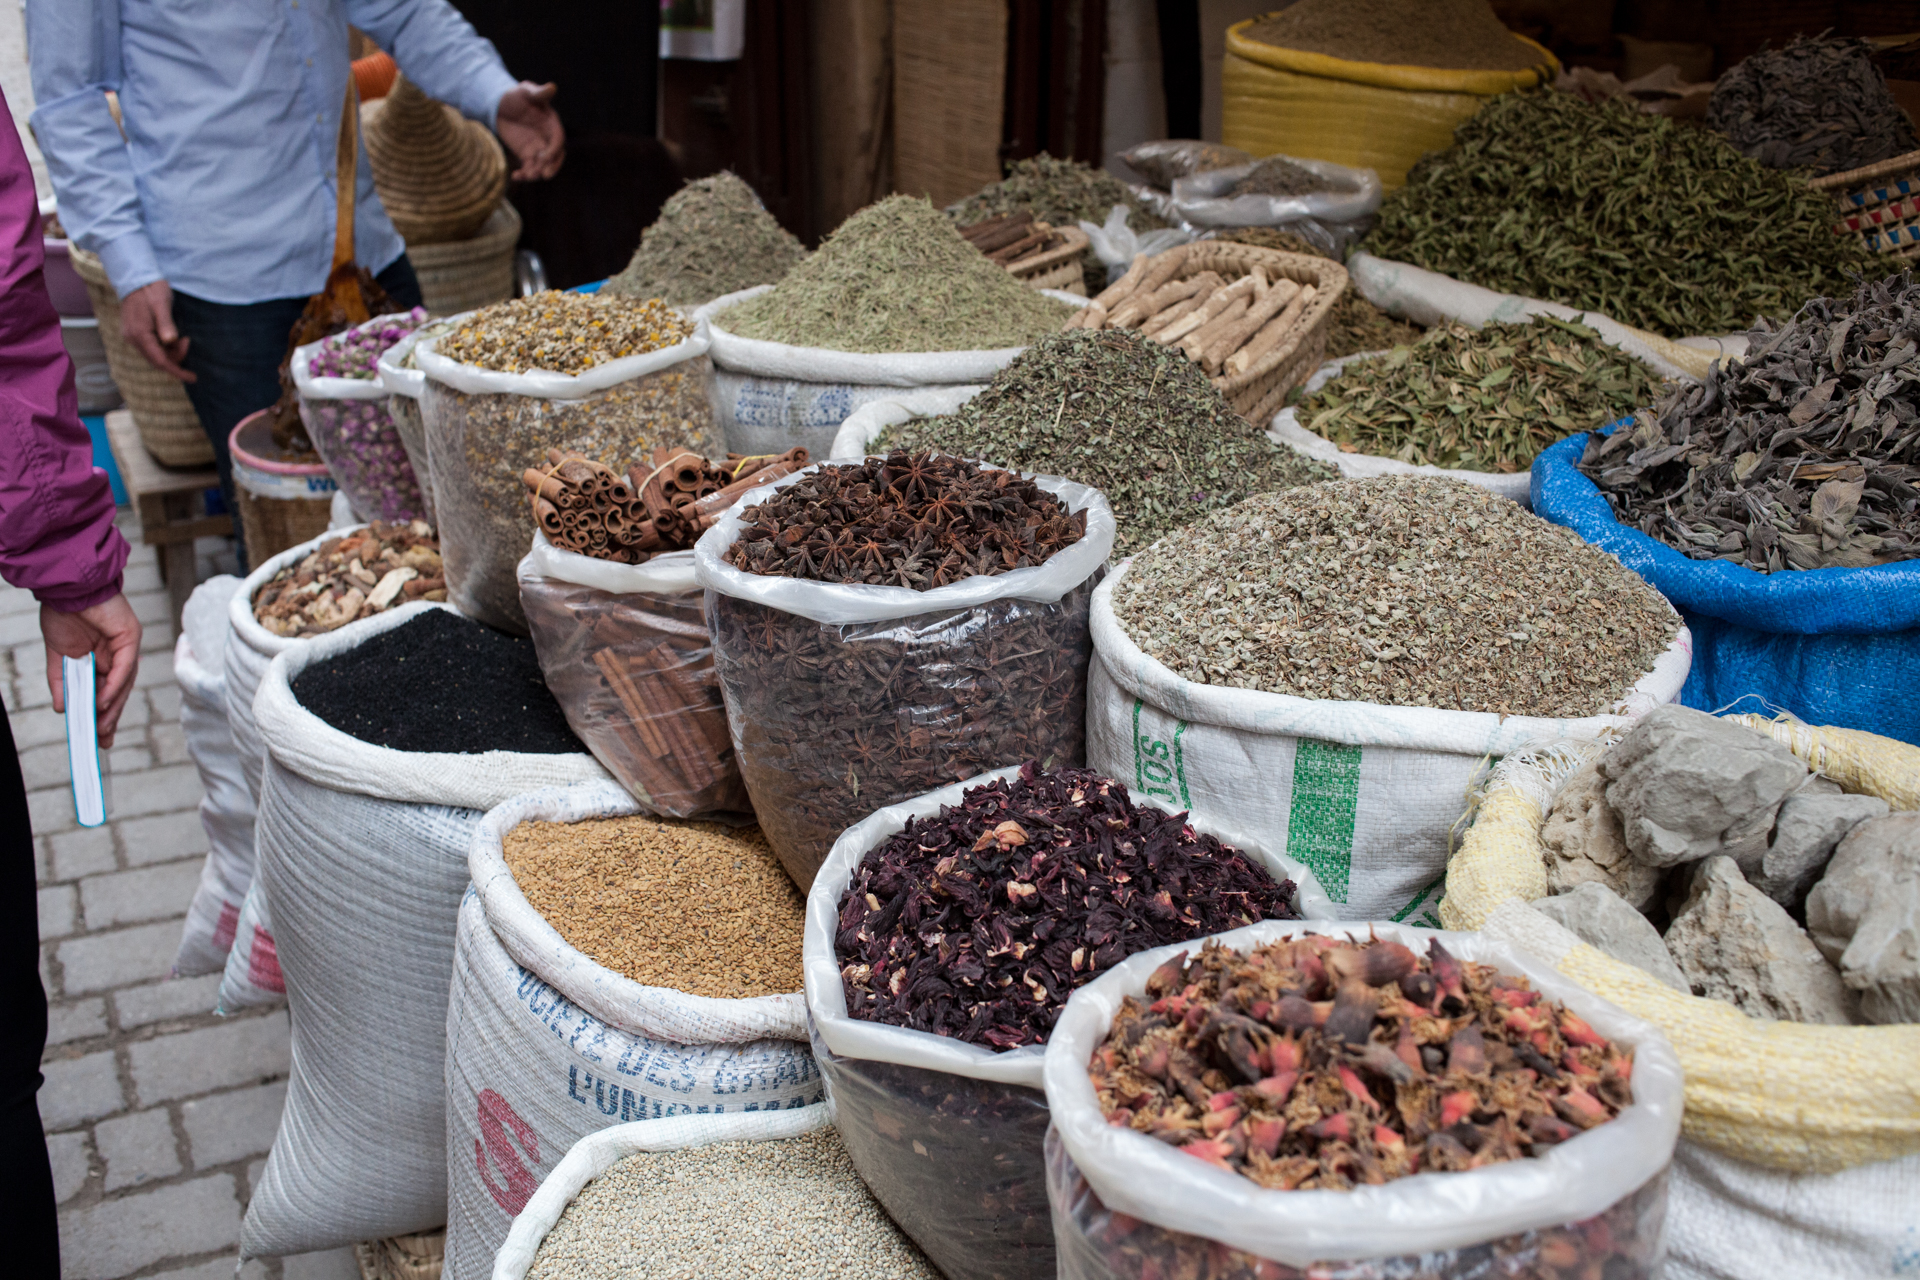 Not all smells in the medina were bad :)